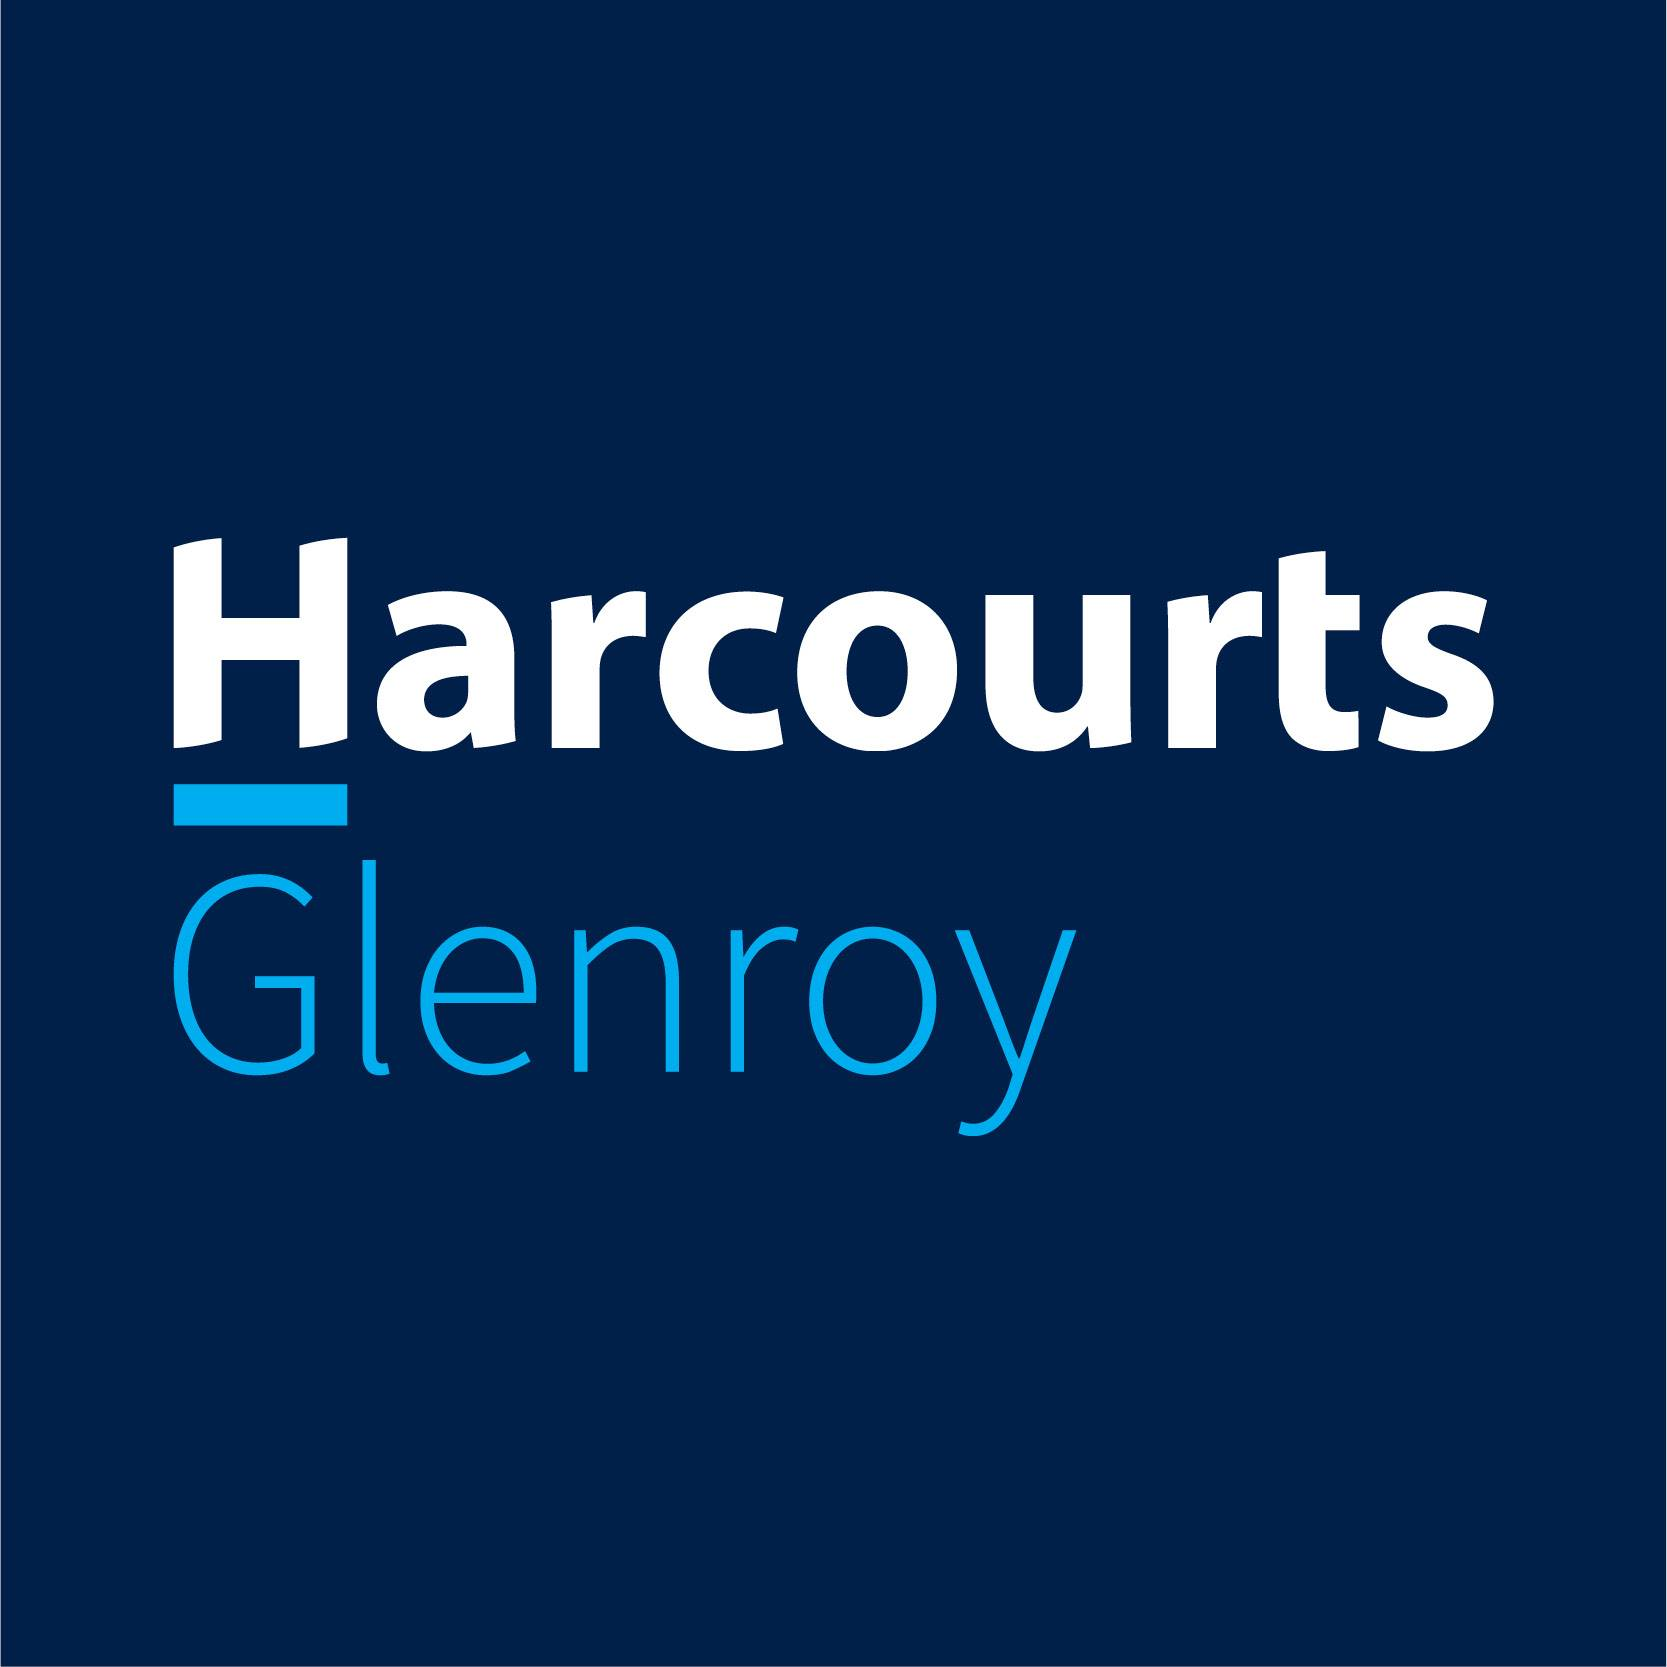 official business logo of Harcourts